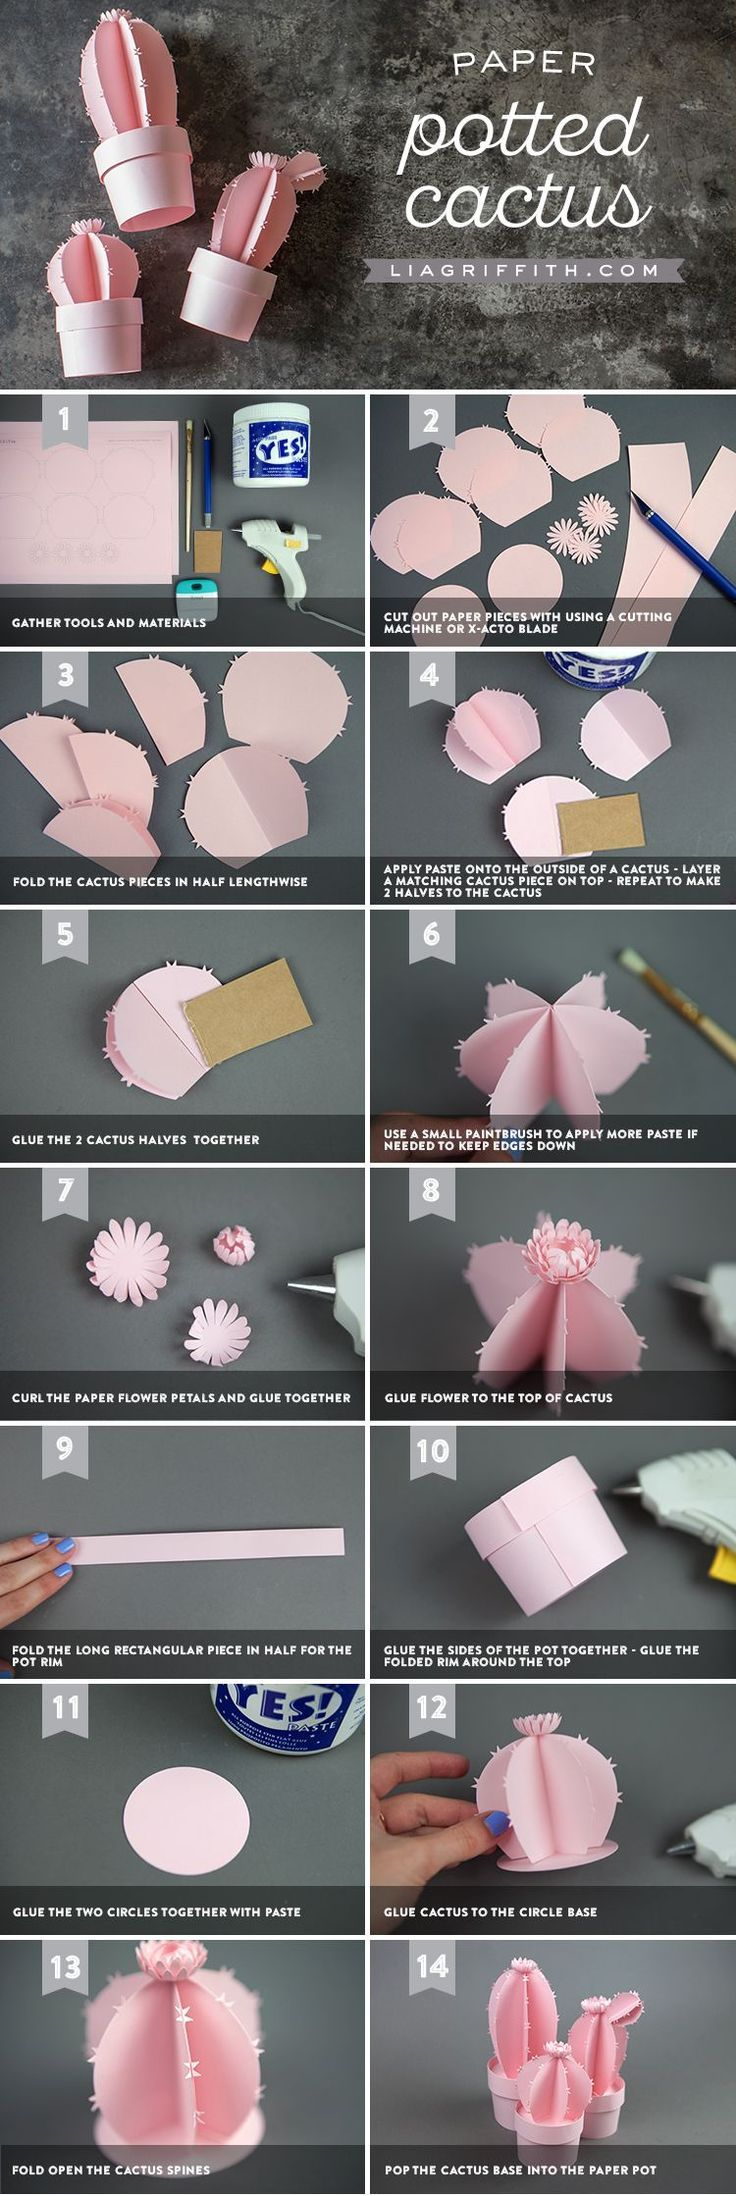 3D Potted Paper Cactus - Lia Griffith